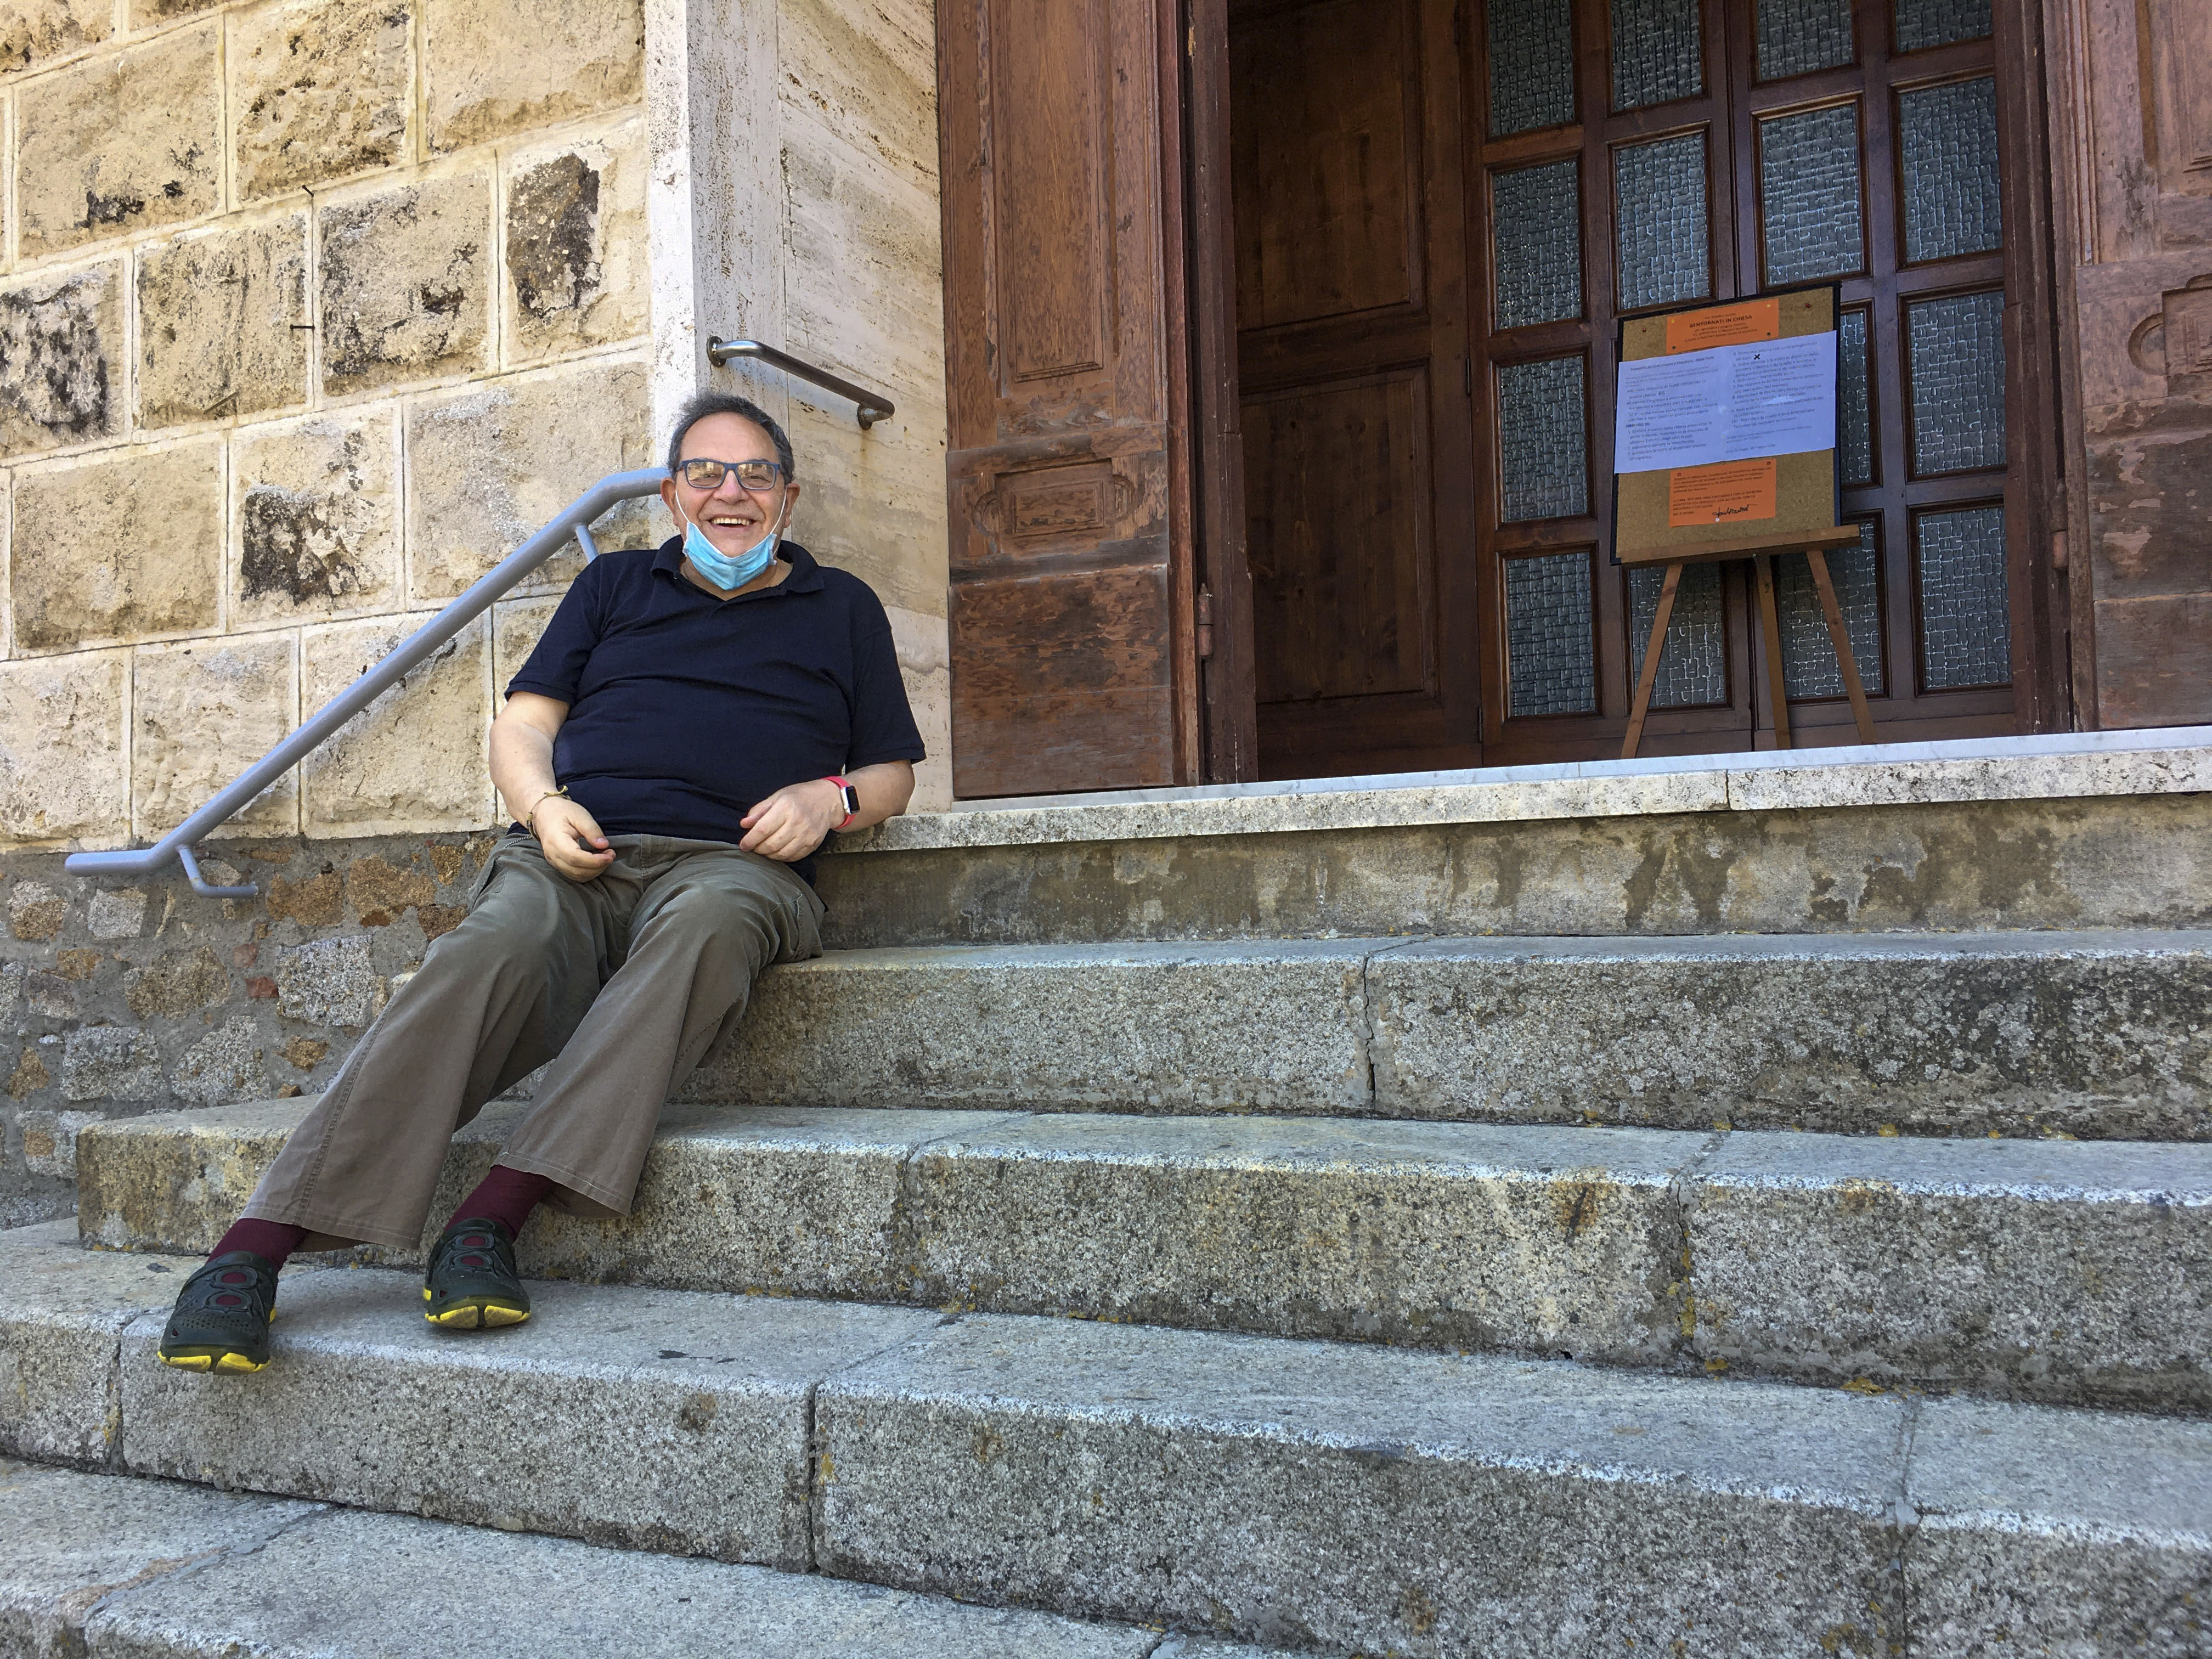 """Rev. Lorenzo Pasquotti poses for photos on the steps of his church at the Giglio Island, Italy, Wednesday, June 24, 2020y. Some 50 local mourners filled the pews for that funeral in Saints Lorenzo and Mamiliano Church, including a man from the continent that had COVID-19 infection, recalled the pastor, Rev. Pasquotti. """"After the funeral, there were greetings, hugging and kissing,"""" as always. Then came the procession to the cemetery, where """"there were more hugs and kisses."""" Yet, """"none of us had any sign"""" of COVID-19 in the days to follow, said Pasquotti. """"No one was sick. No symptoms that can make you think you were infected."""" (AP Photo/Paolo Santalucia)"""